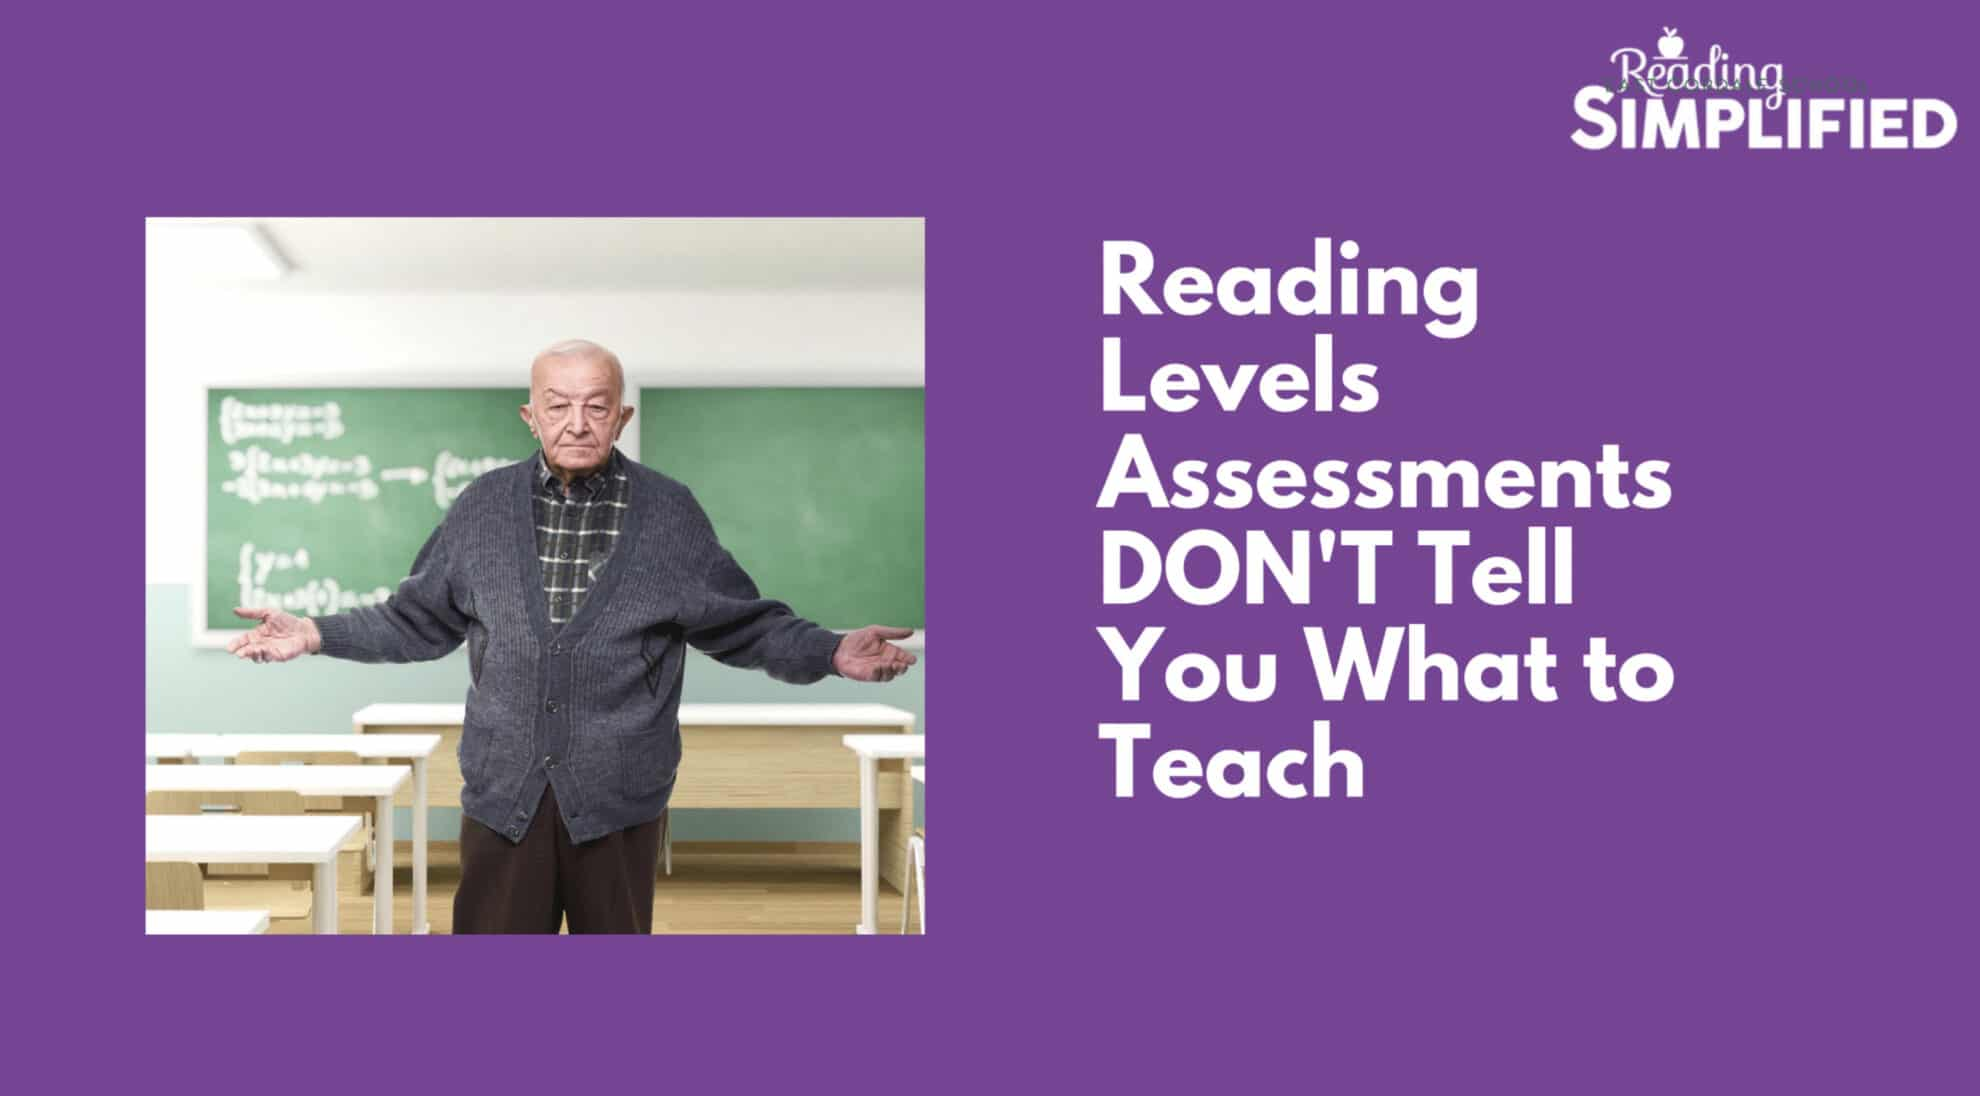 Levels Assessments Don't Direct Instruction